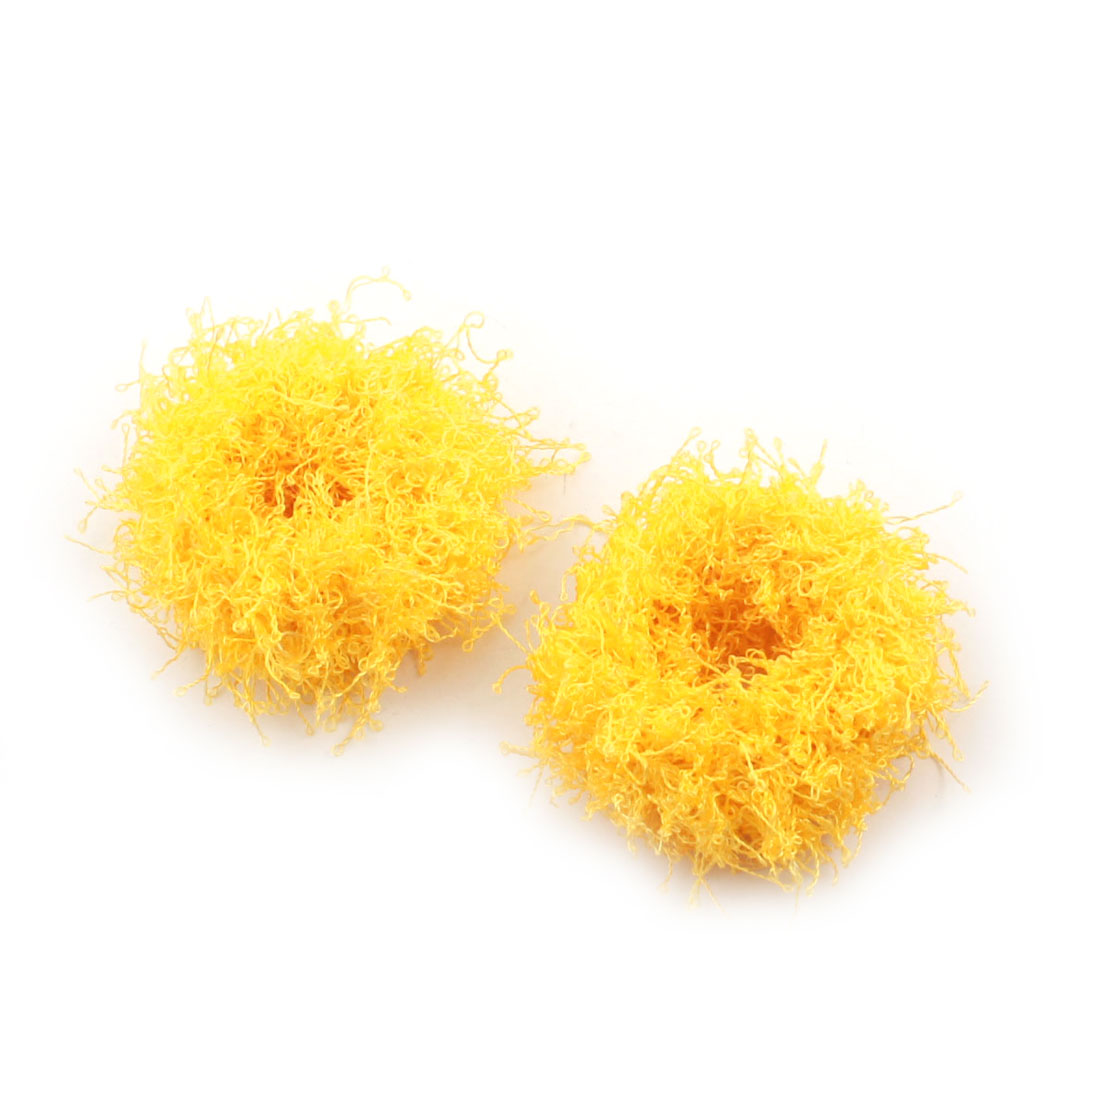 2 Pcs Yellow Stretchy Hair Band Tie Ponytail Holder for Girls Ladies